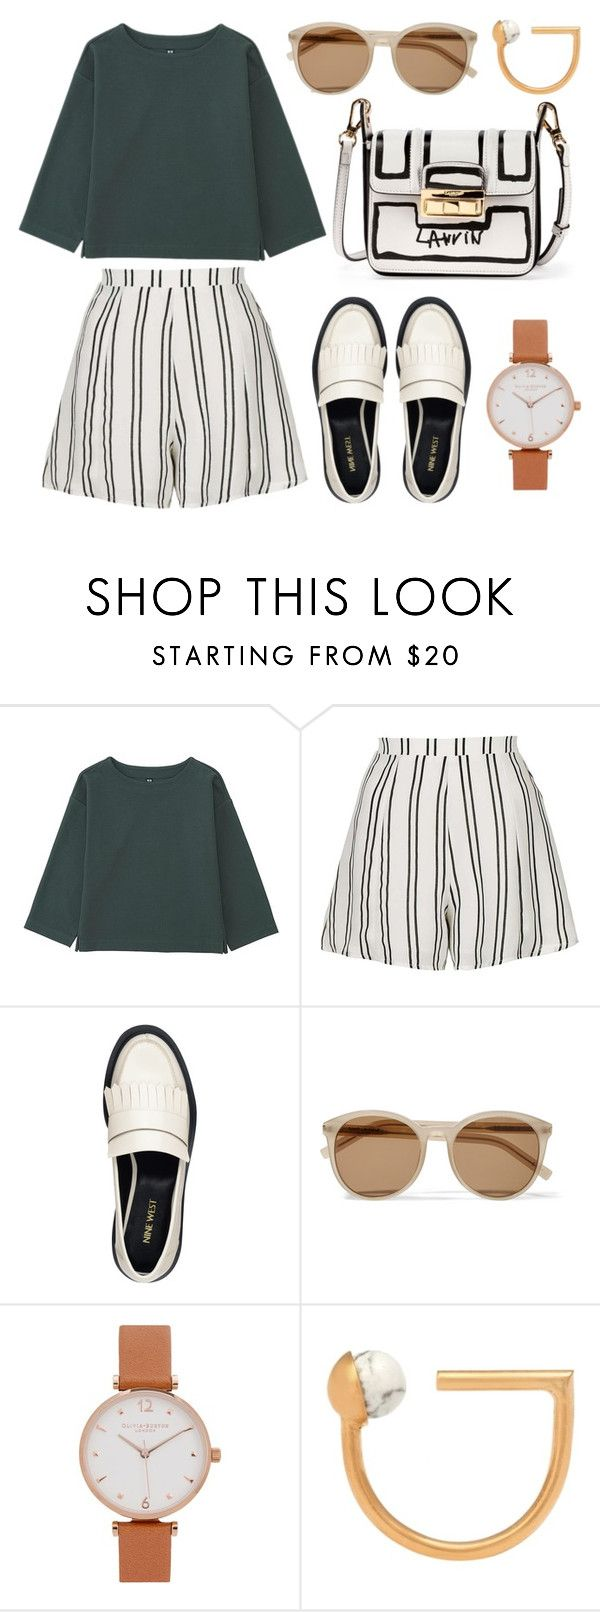 """""""wide shirt"""" by indirag on Polyvore featuring Uniqlo, Topshop, Nine West, Yves Saint Laurent, Olivia Burton, LeiVanKash and Lanvin"""